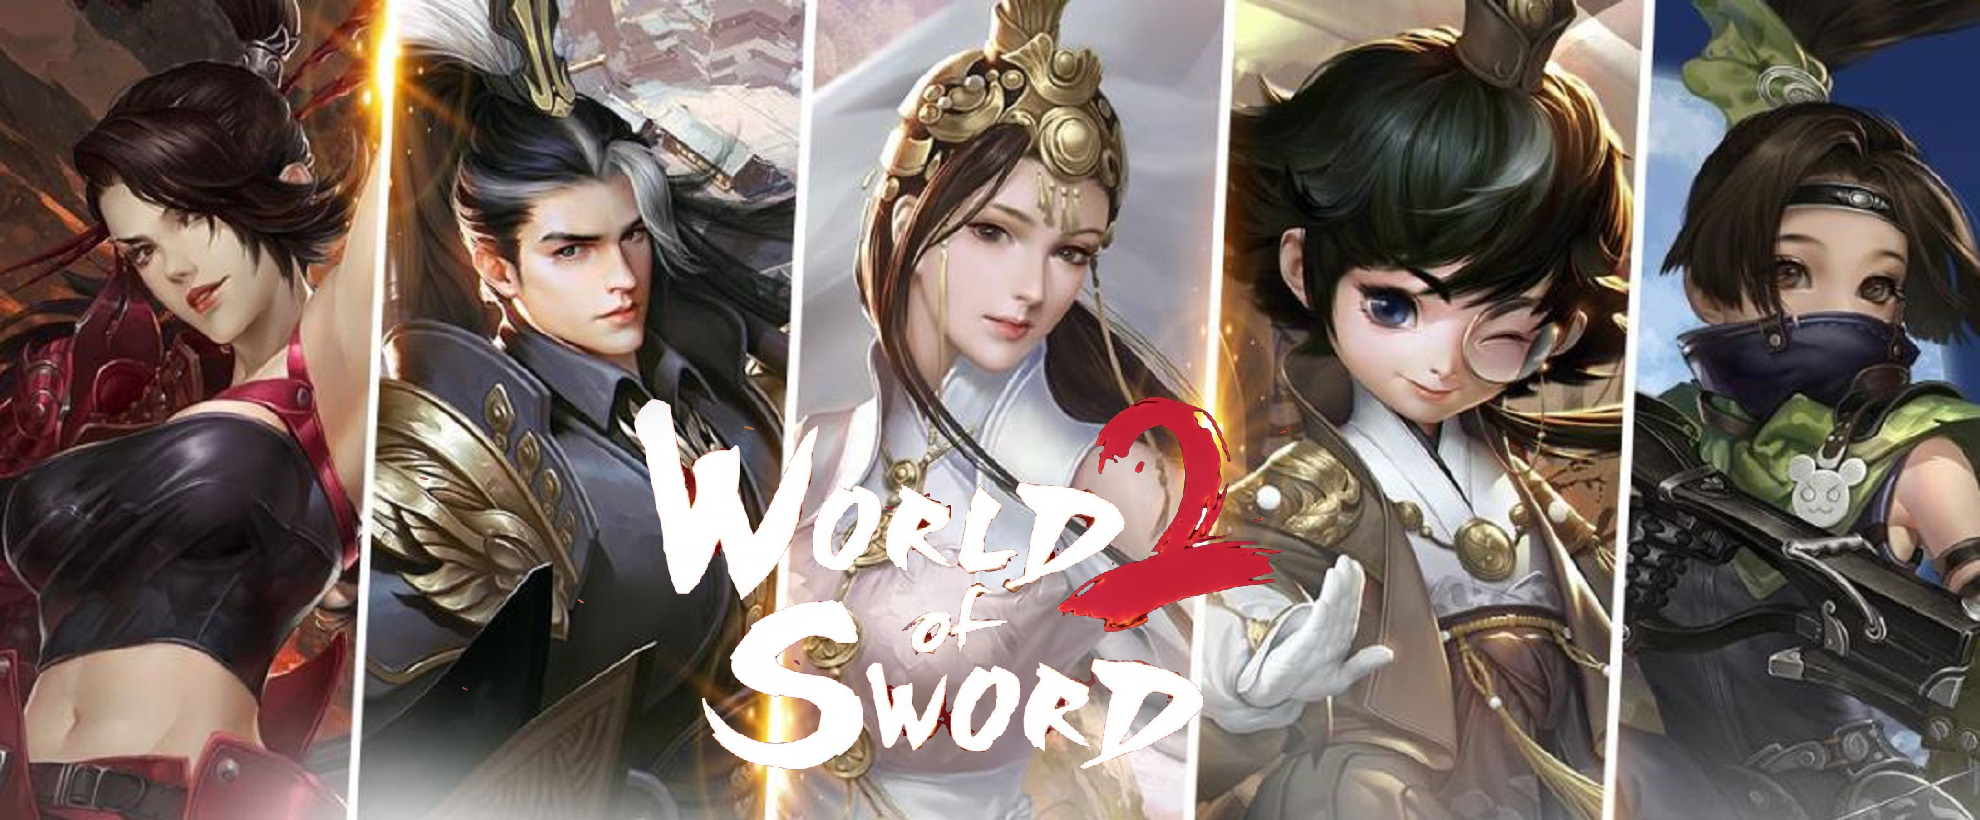 World Of Sword 2